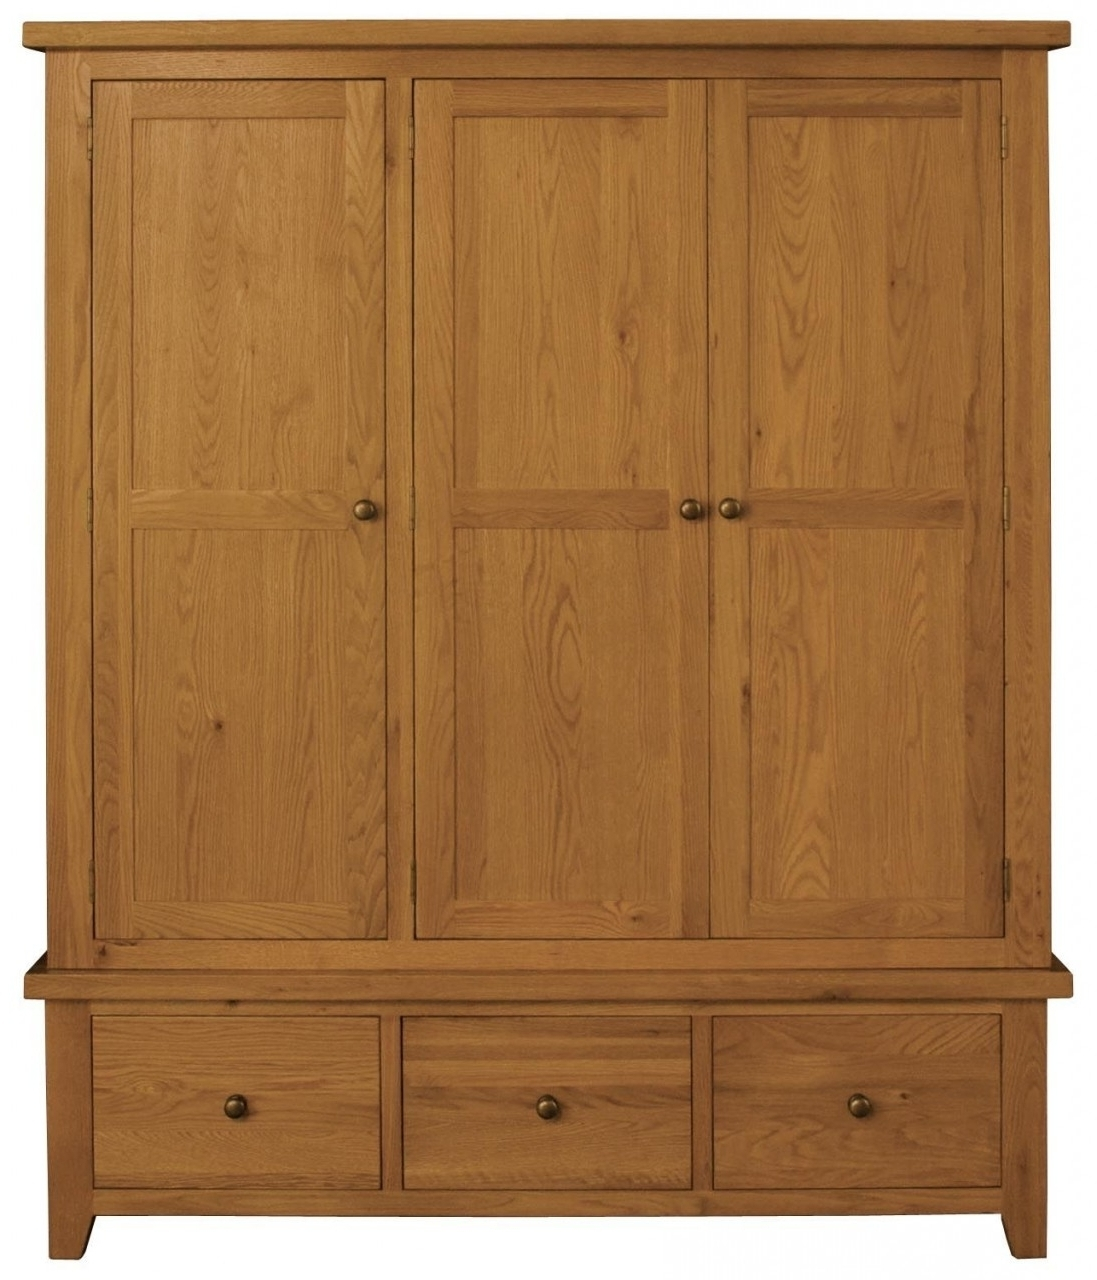 Famous Triple Door Wardrobes For Buy Vermont Oak Triple Wardrobe – 3 Door 3 Drawer Online – Cfs Uk (View 4 of 15)